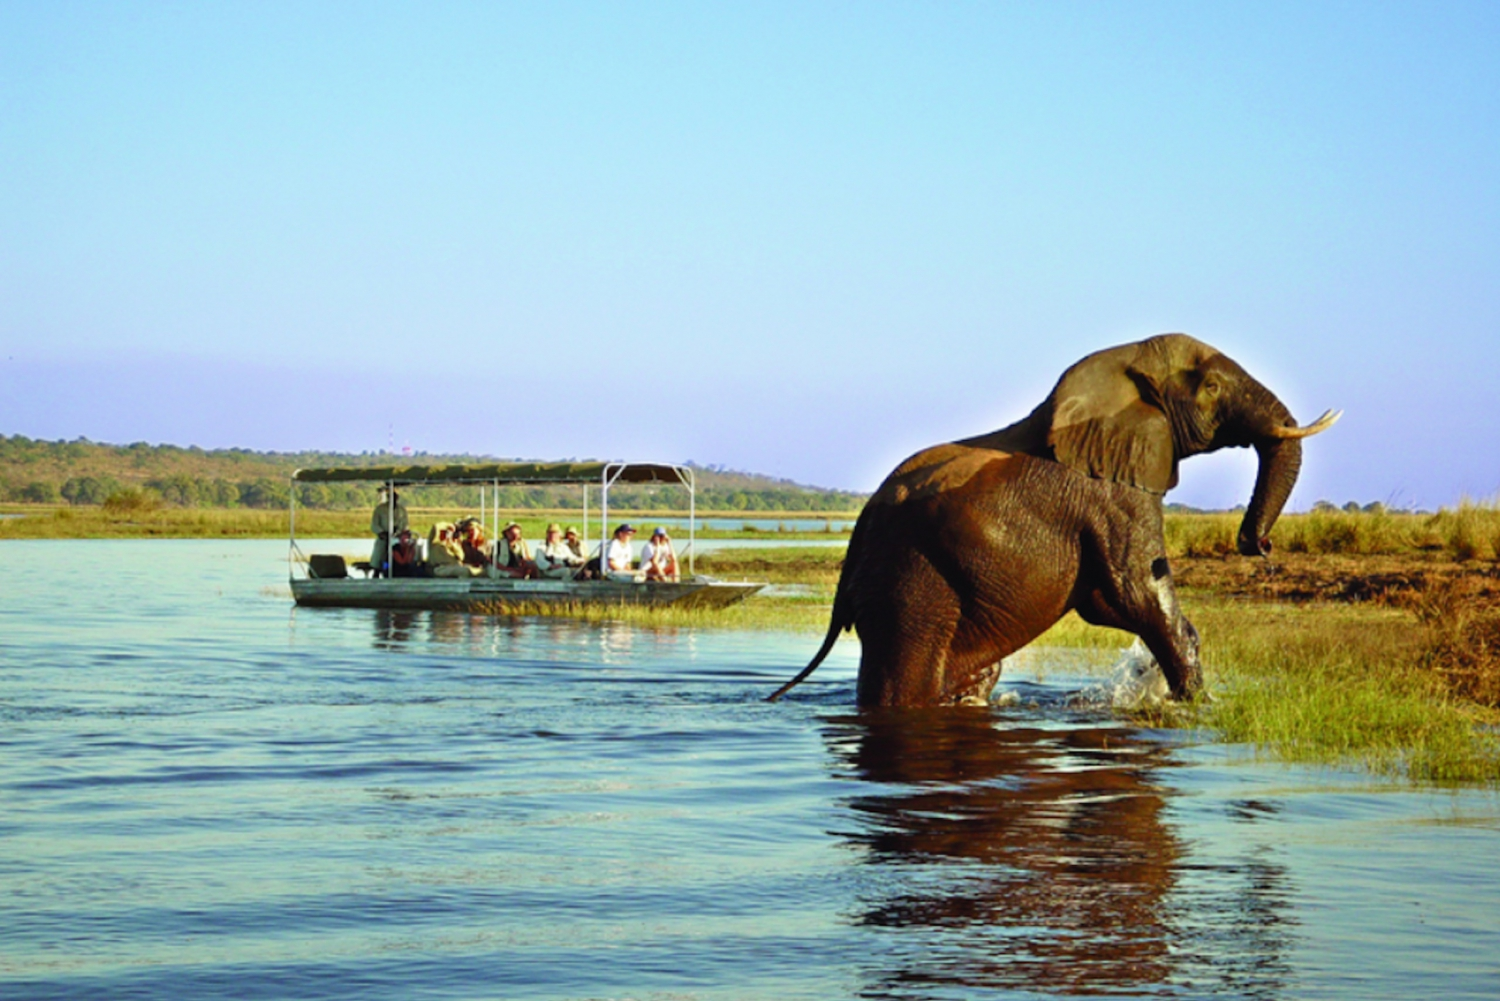 From Livingstone: Cruise & Game Drive in Chobe National Park